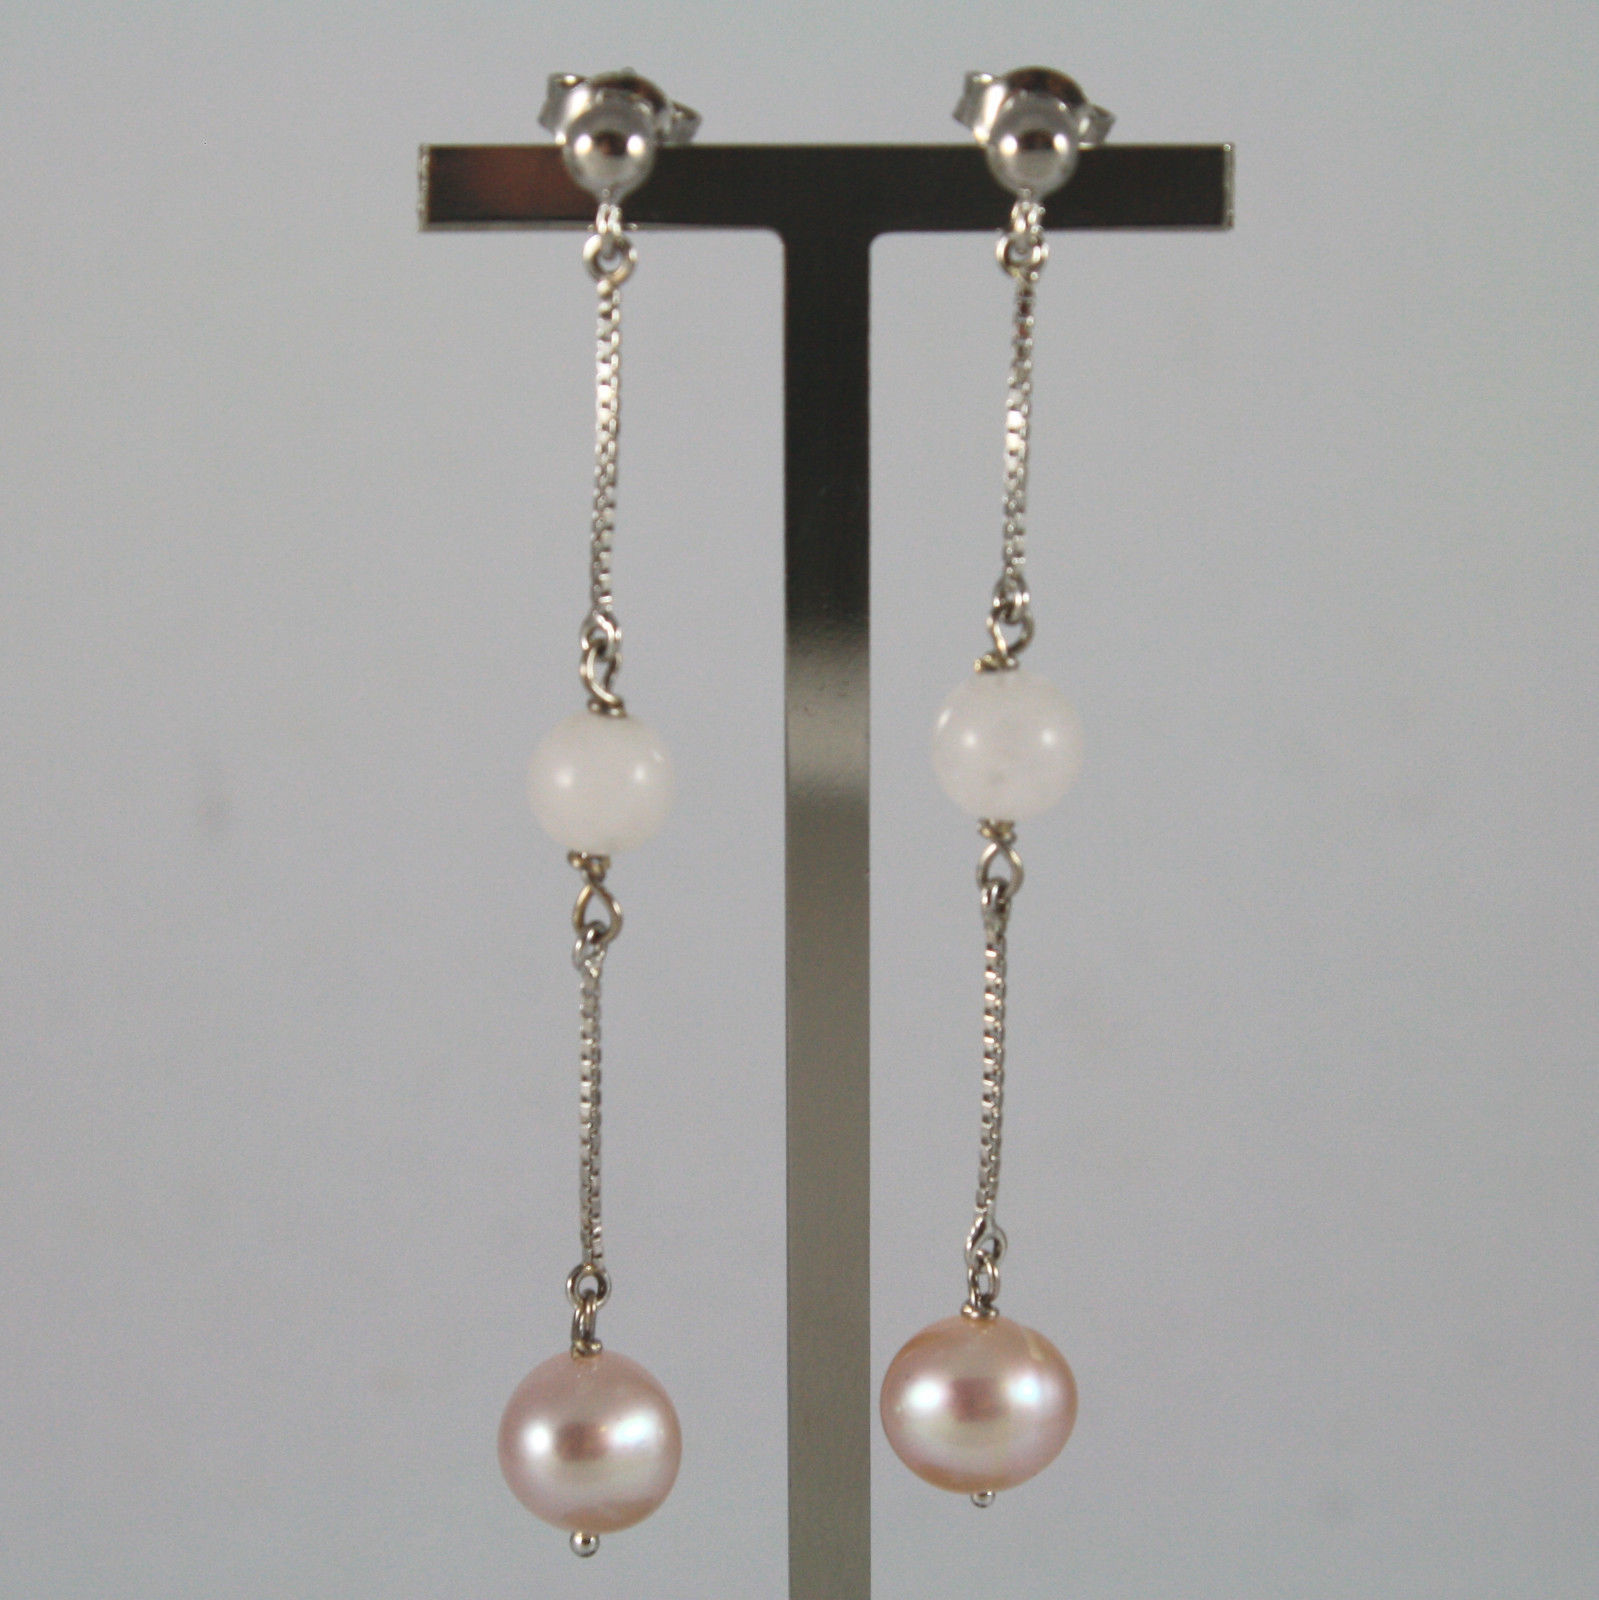 SOLID 18K WHITE GOLD EARRINGS, WITH PINK PEARL AND PINK QUARTZ,  MADE IN ITALY